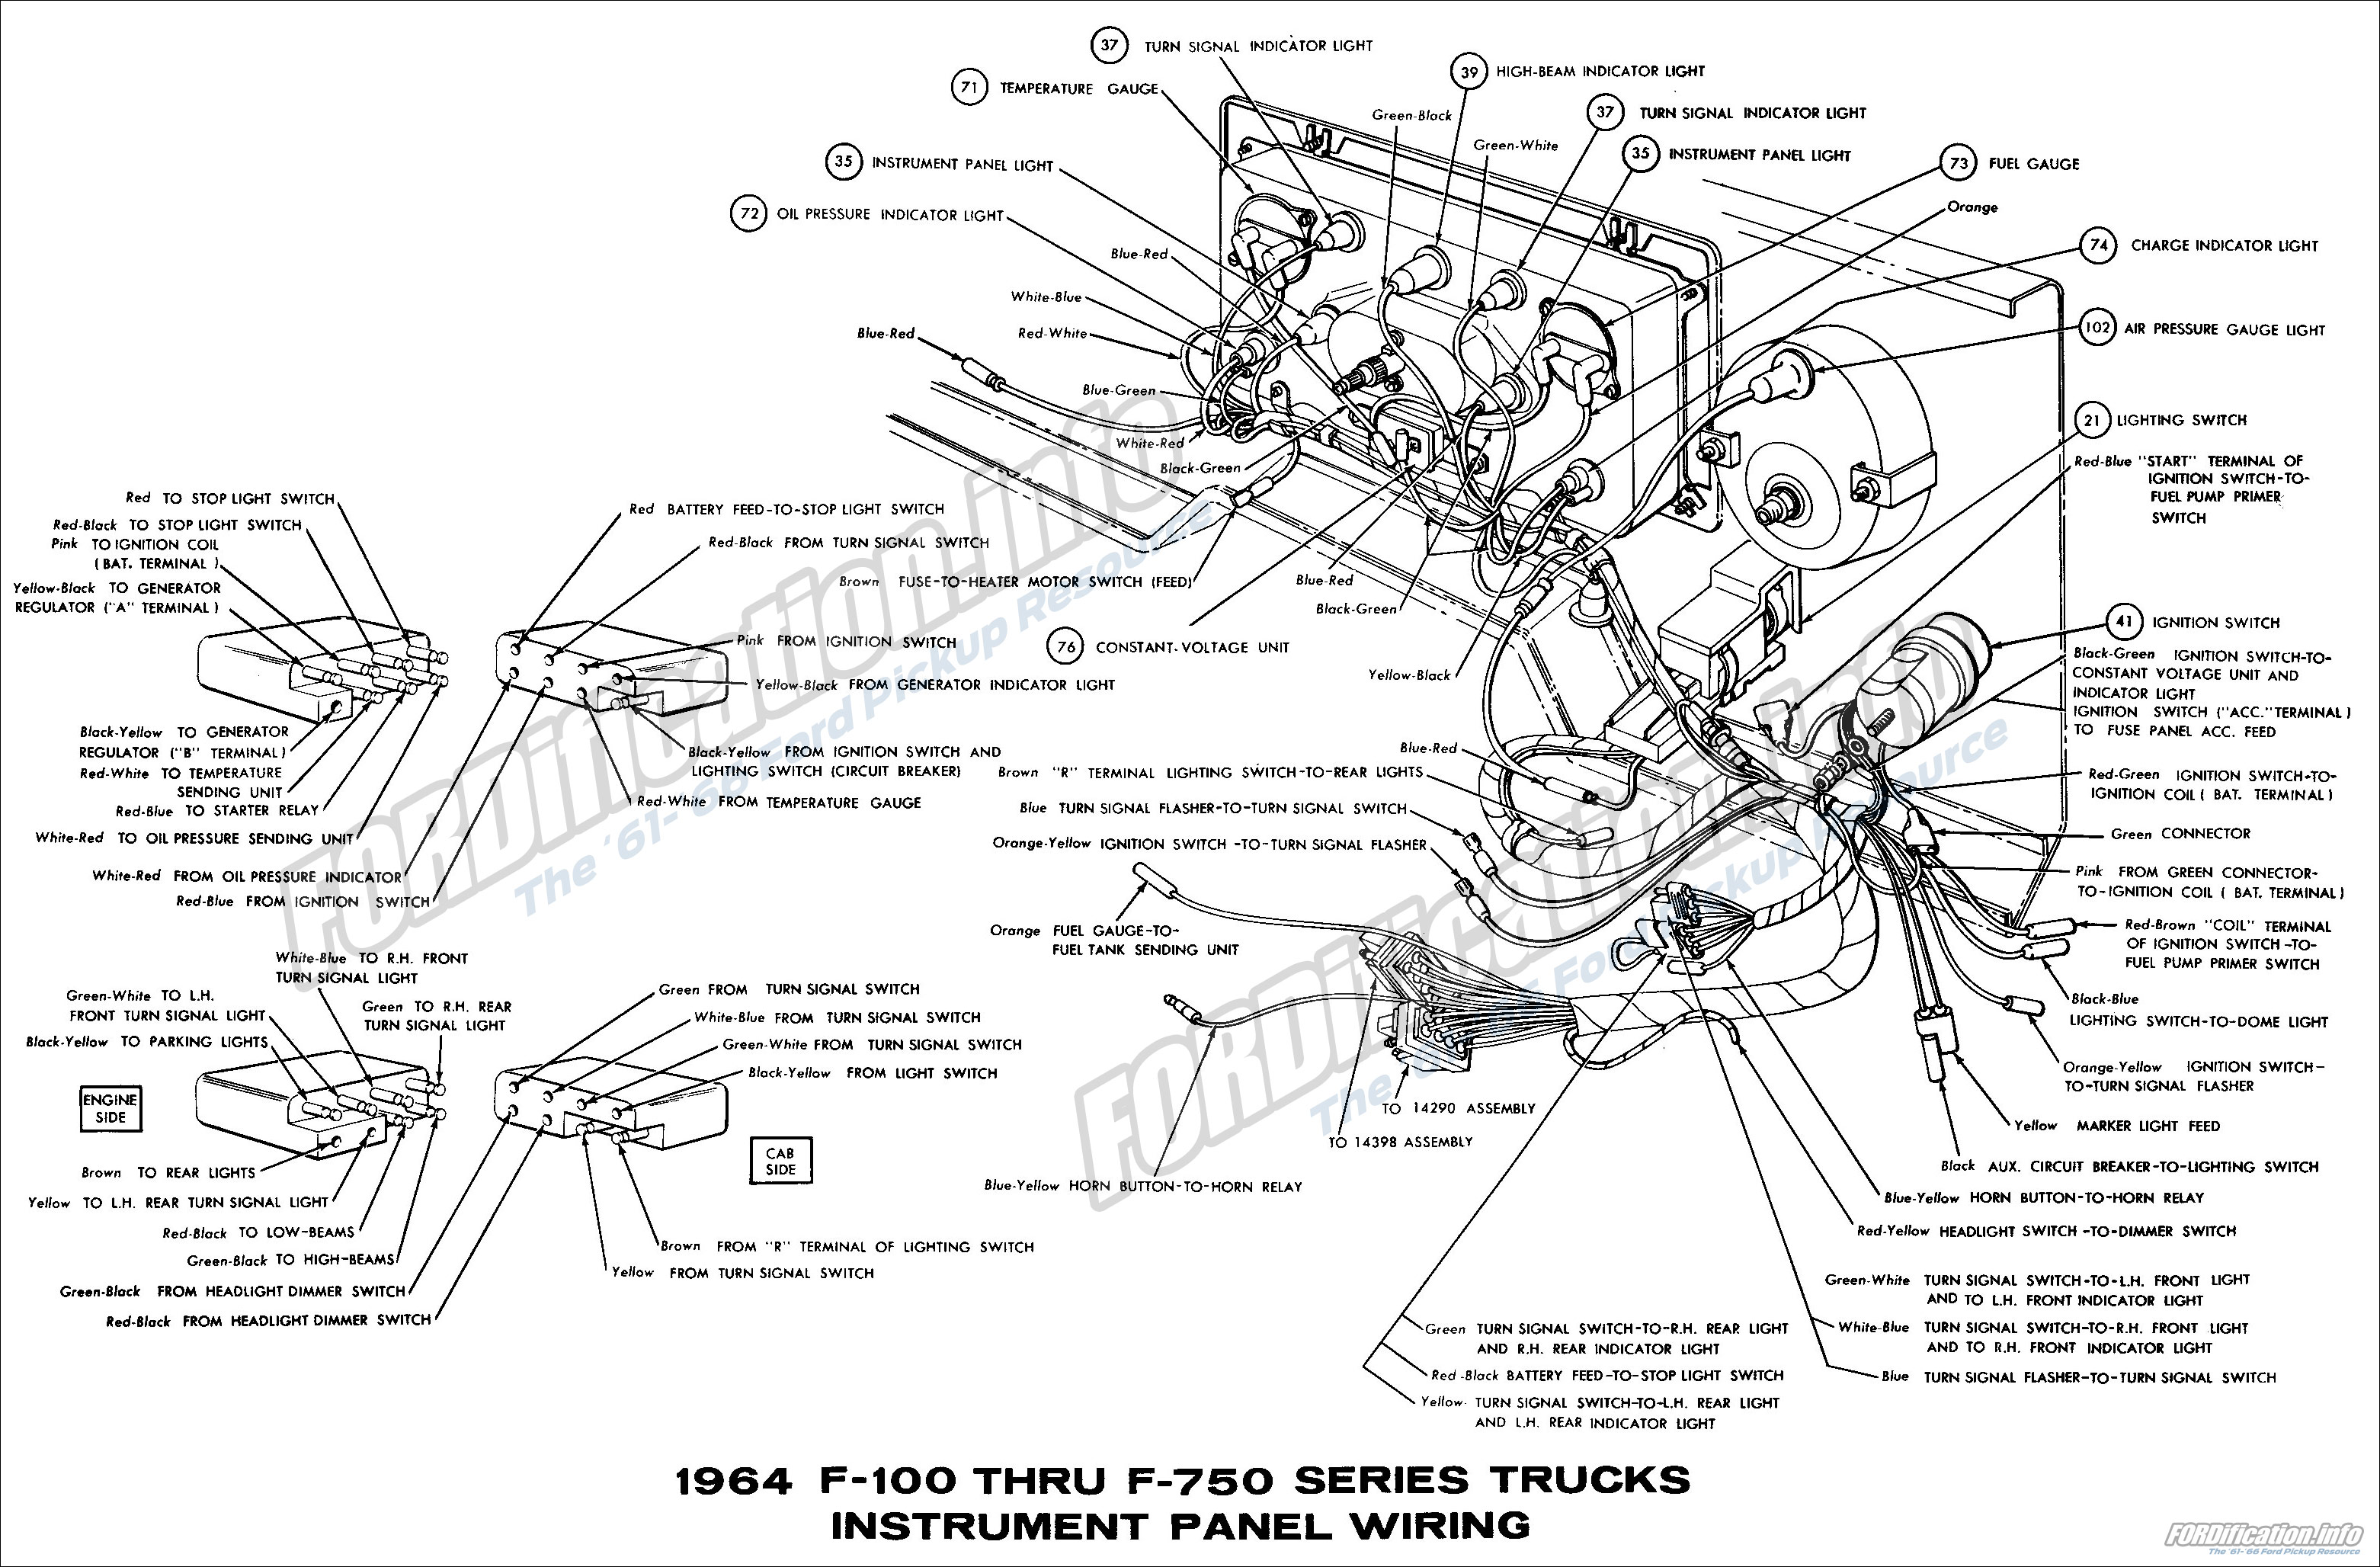 1964 ford truck wiring diagrams - fordification.info - the '61-'66 ford  pickup resource  fordification.info